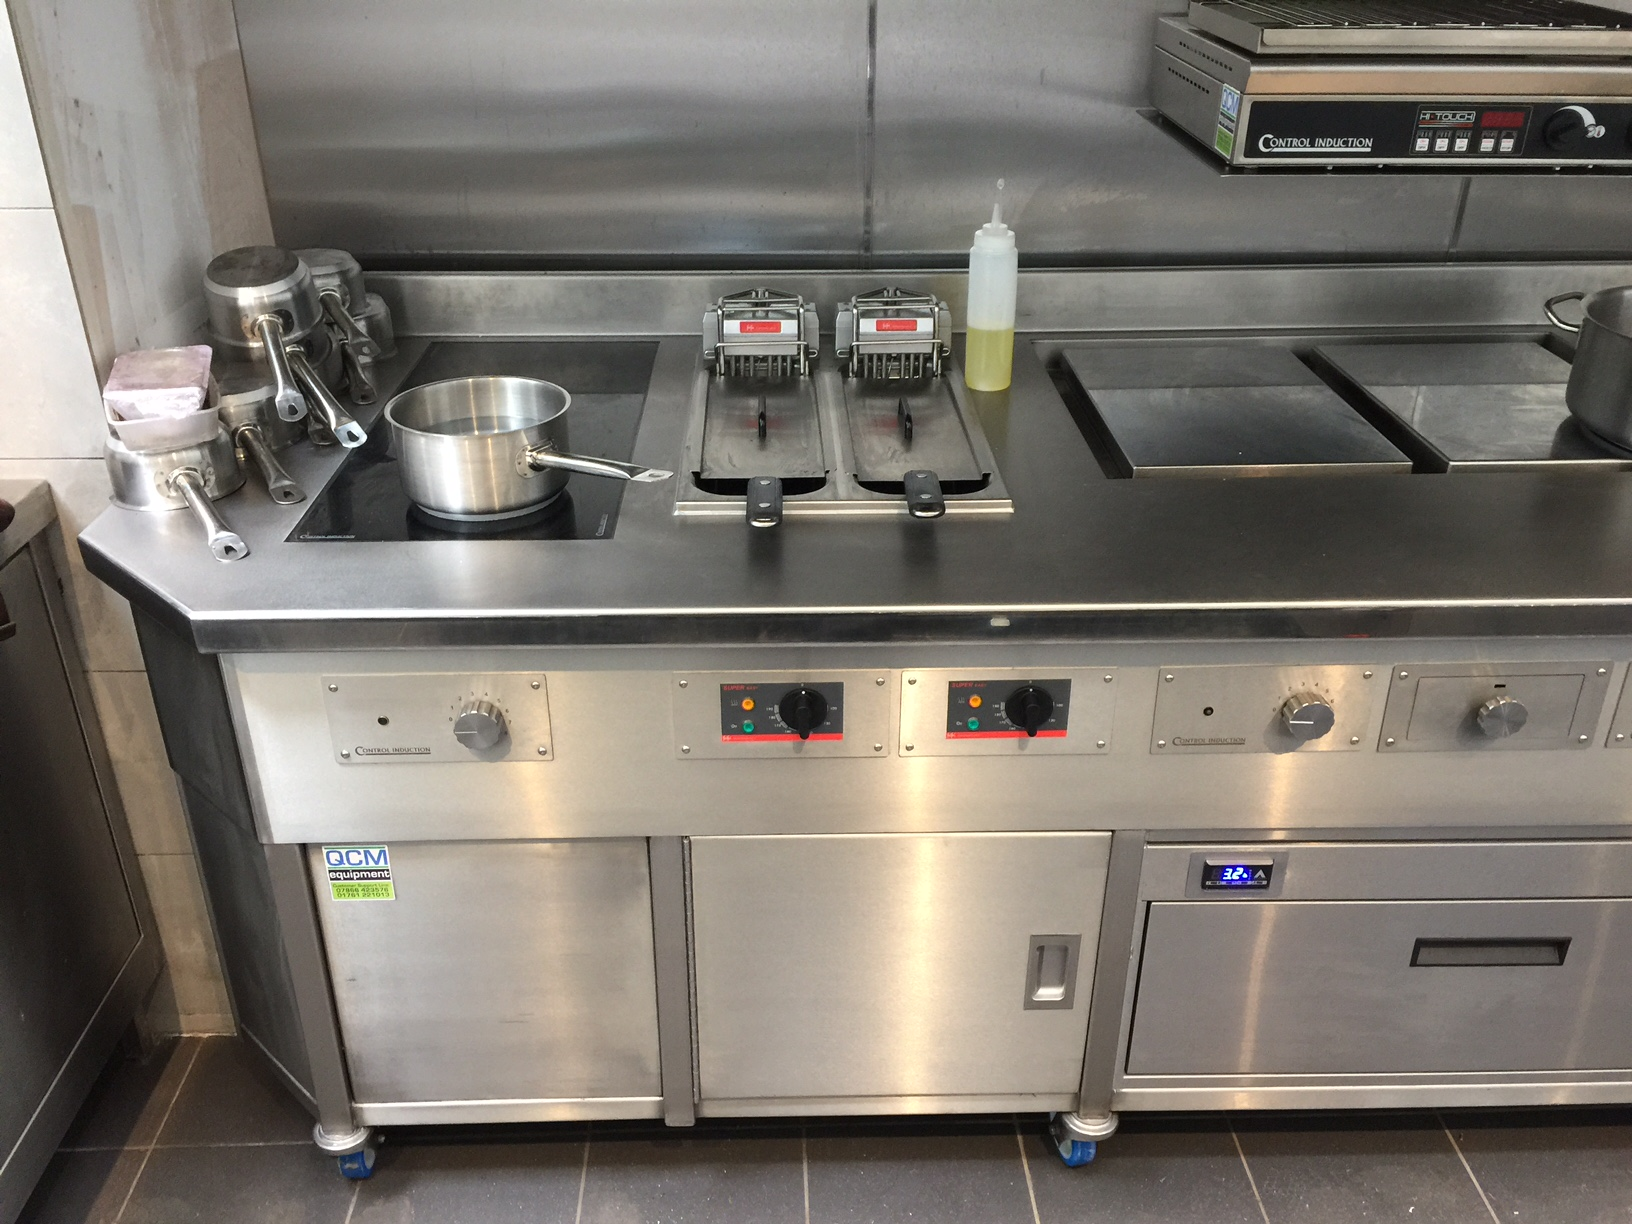 Induction wall suite with Slider fryers planchas and slamander